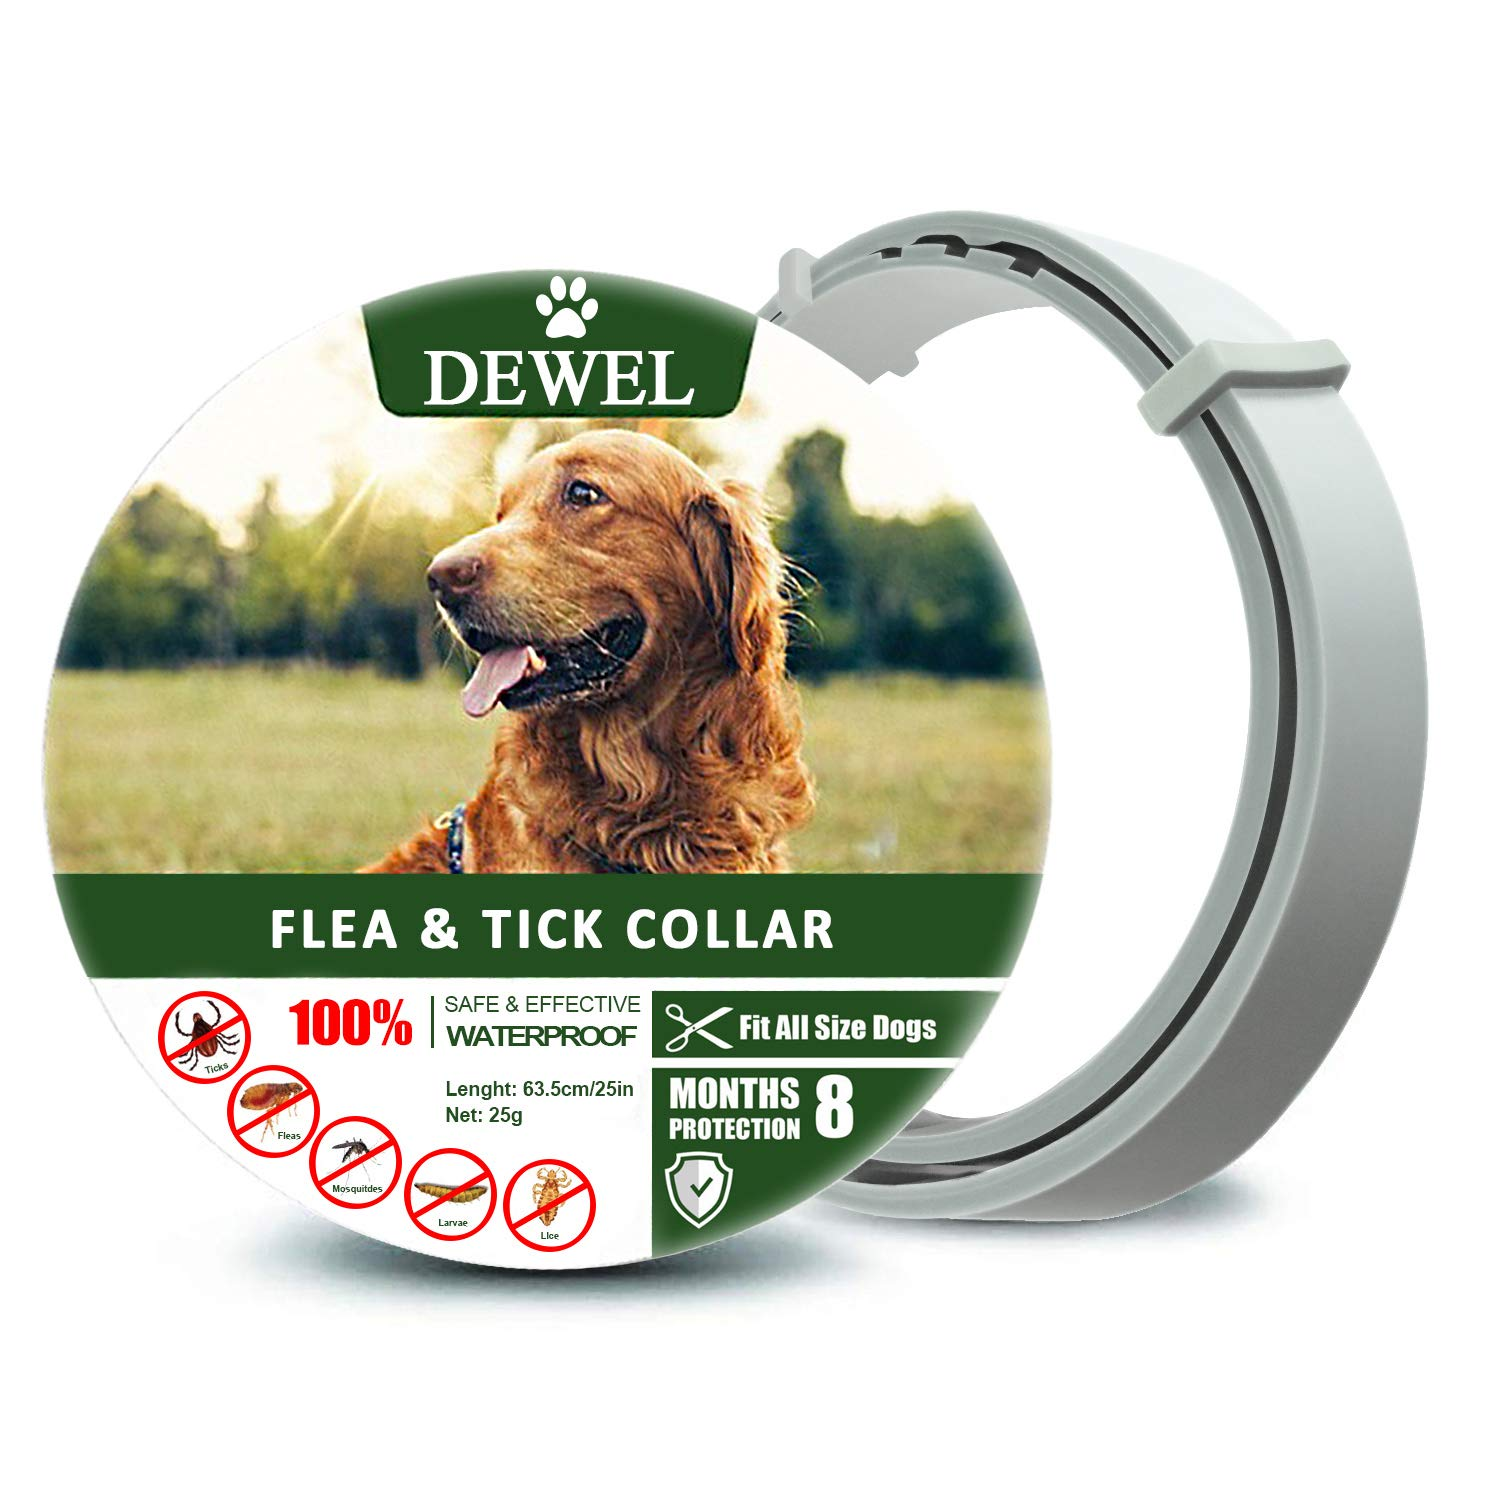 Fedciory Prevention Collar for Large and Small Dogs Control Dog Collar for 8 Months- 07